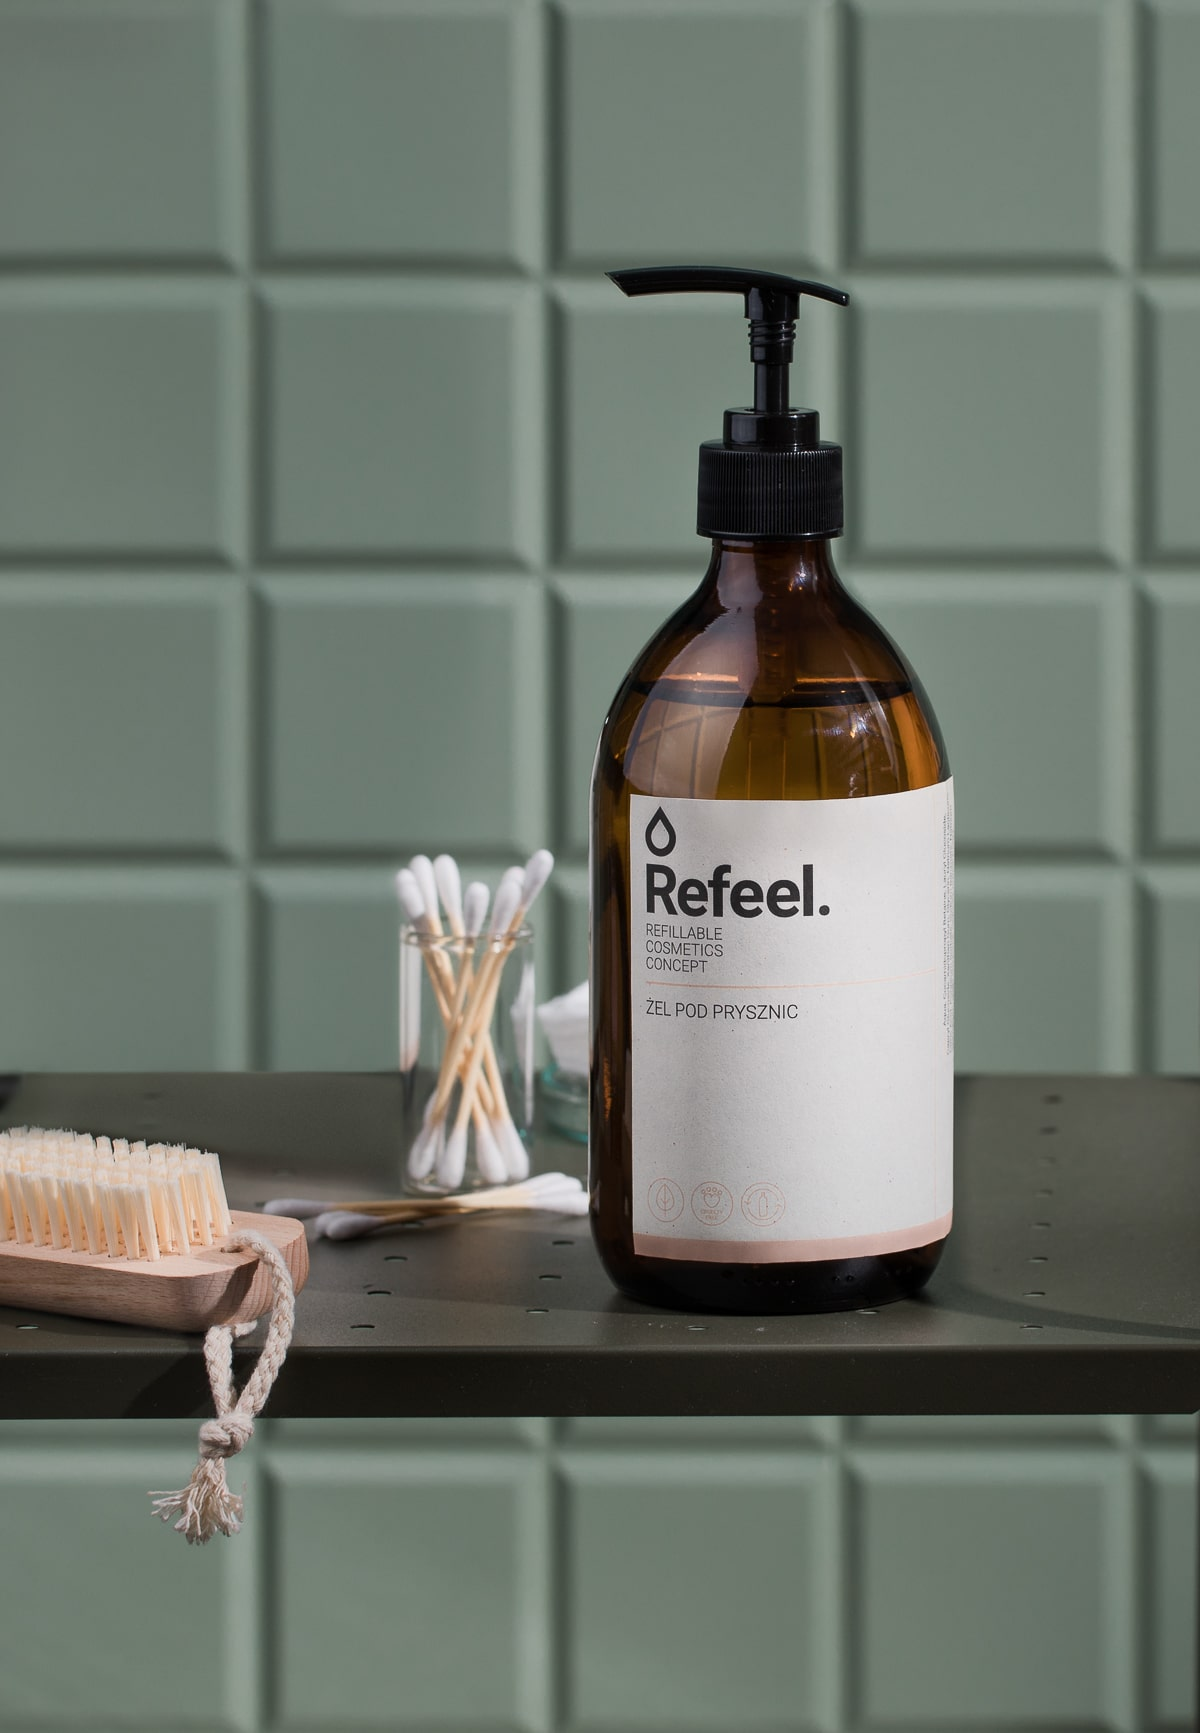 Refeel Concept